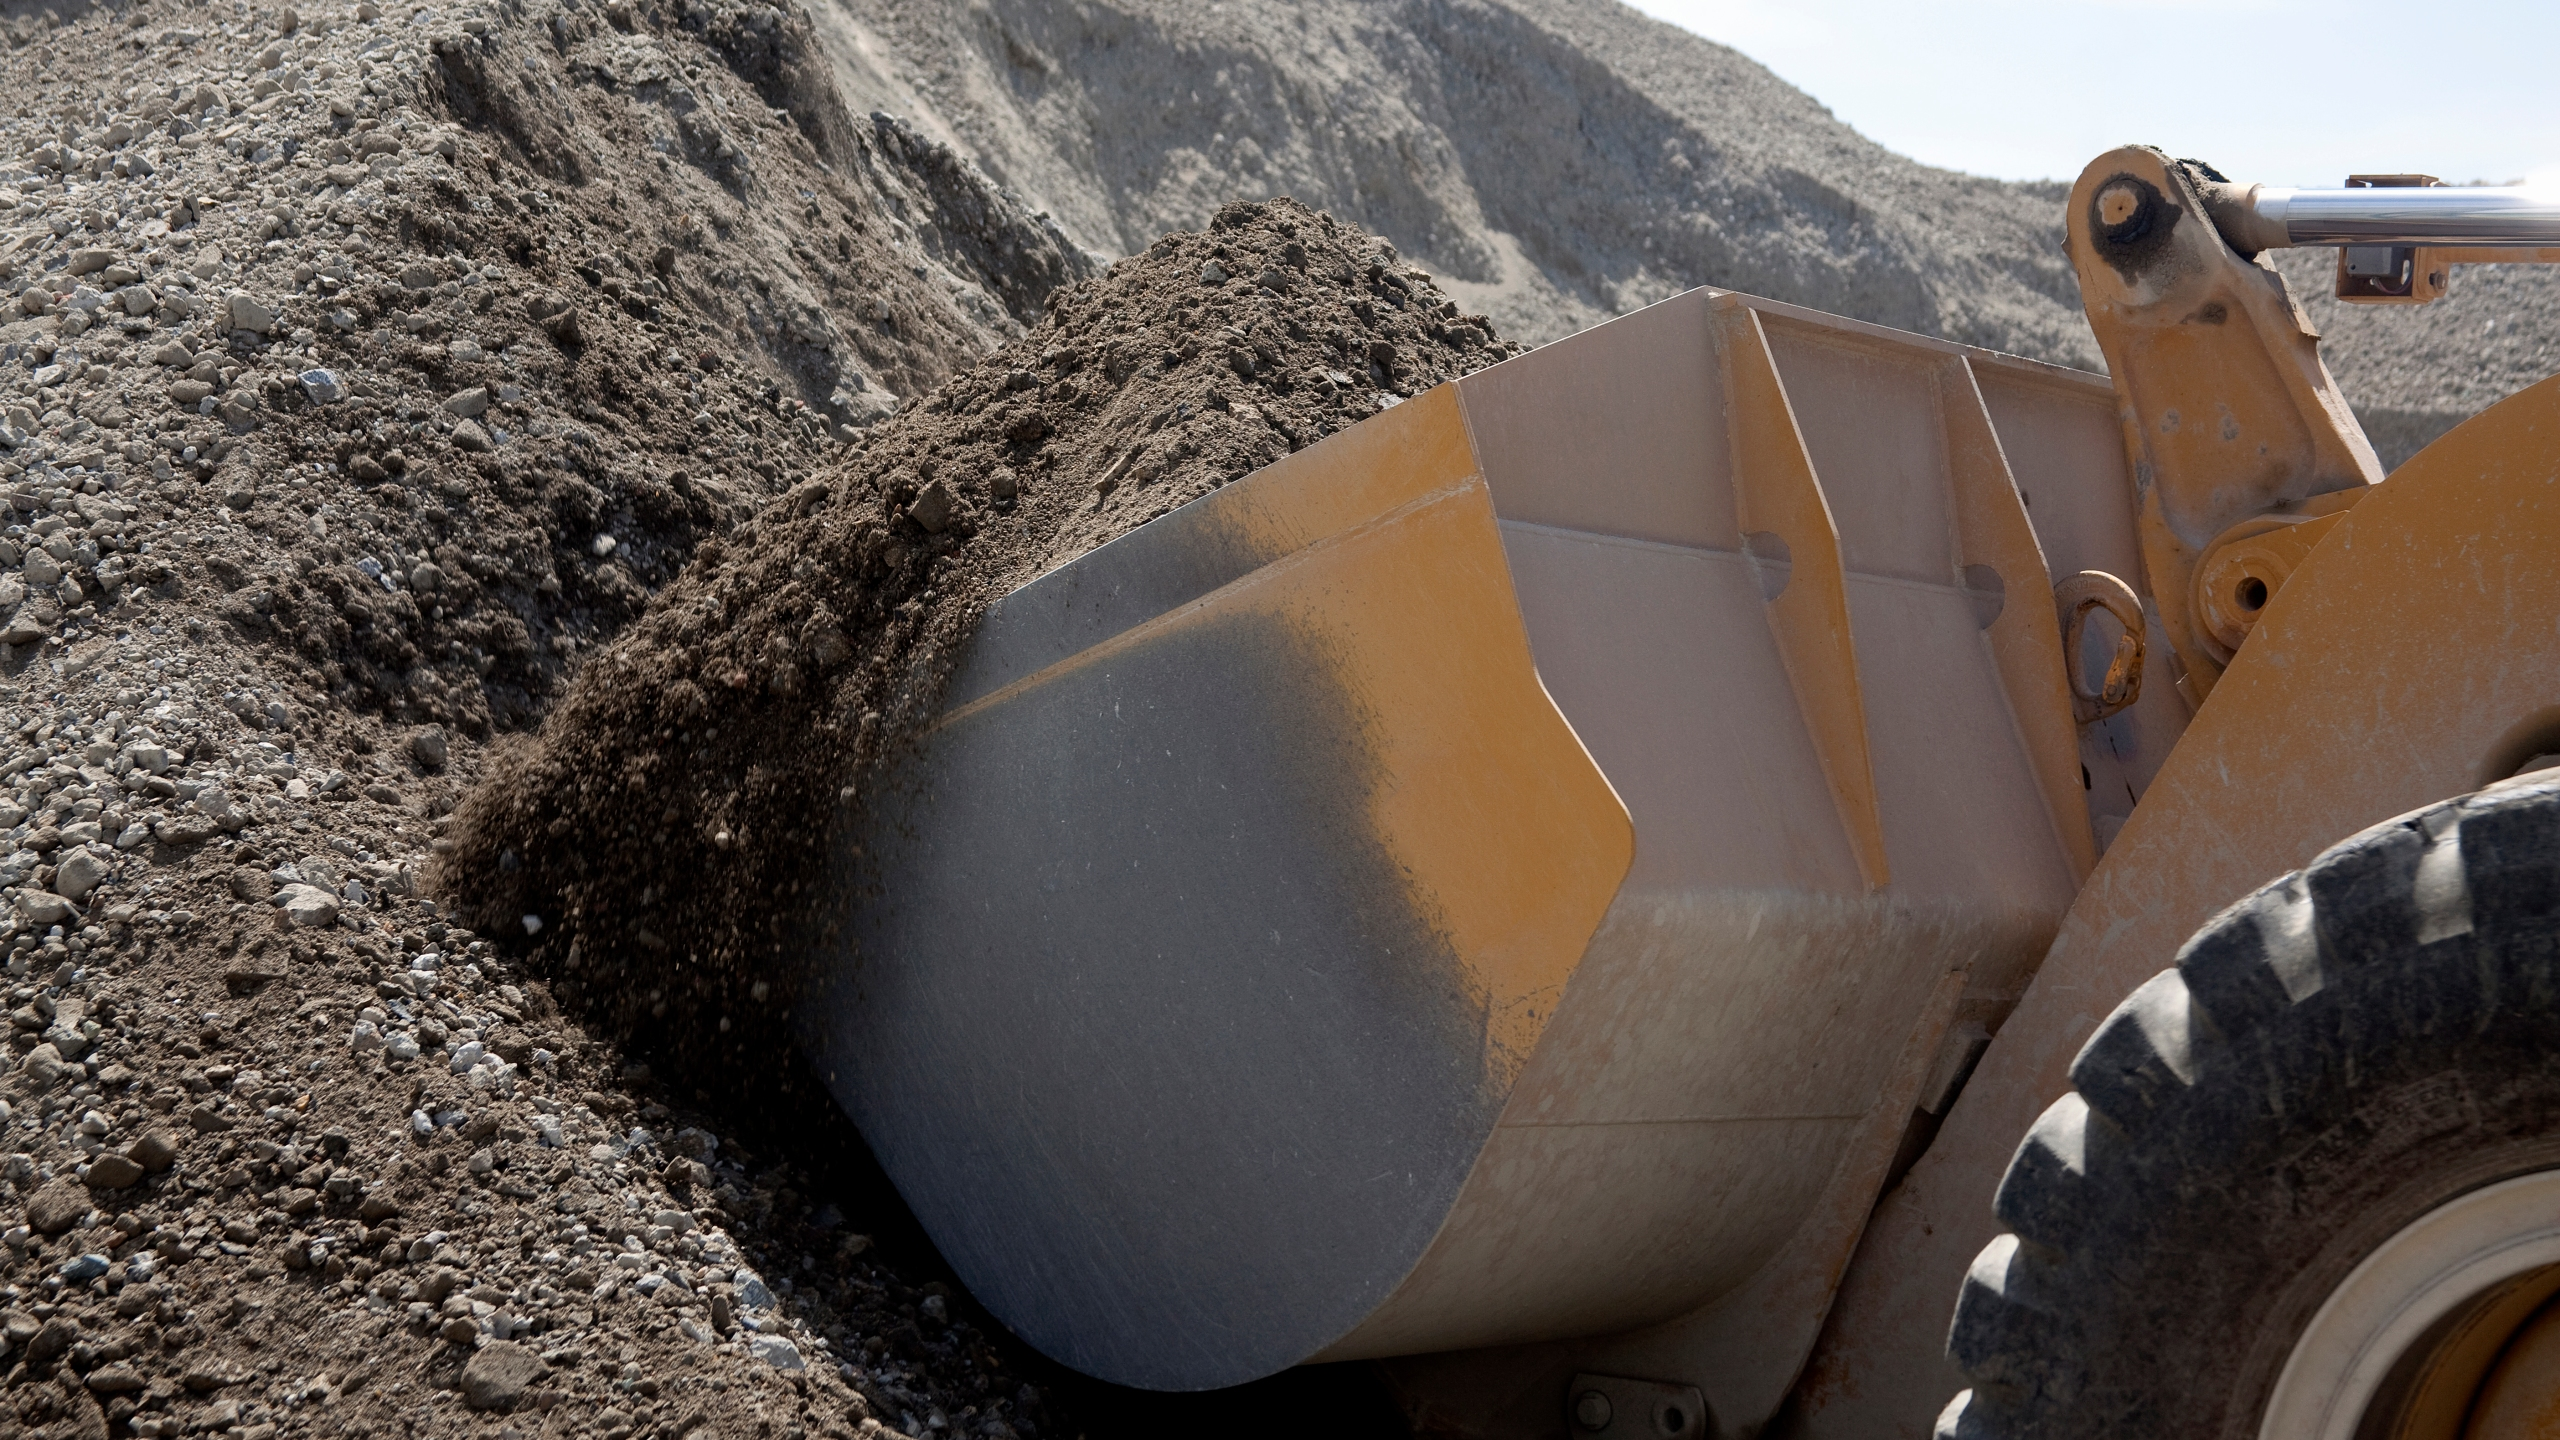 This file image shows a bull dozer. (Credit: Getty Images)